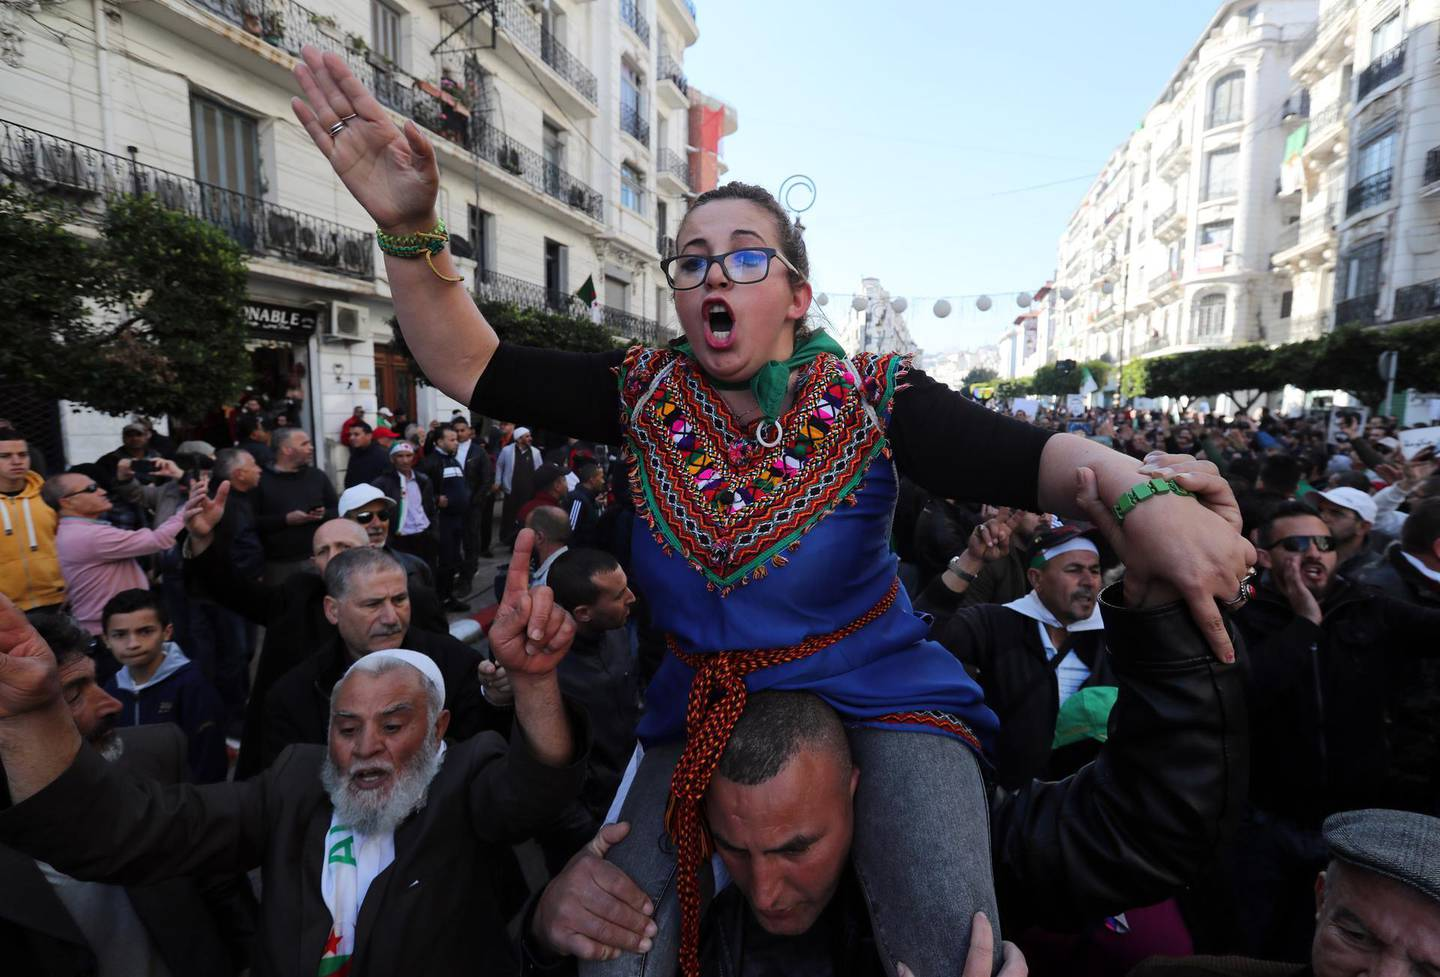 epa08237347 Algerians shout slogans as they march to mark the first anniversary of the popular protests in Algiers, Algeria, 22 February 2020. Algerian protesters this weekend are marking the first anniversary of the protest movement that began on 16 February 2019 after Abdelaziz Bouteflika announced his candidacy for a fifth presidential term. The protesters continue to press for their demands for a complete change of the ruling elite and an end to corruption.  EPA/MOHAMED MESSARA